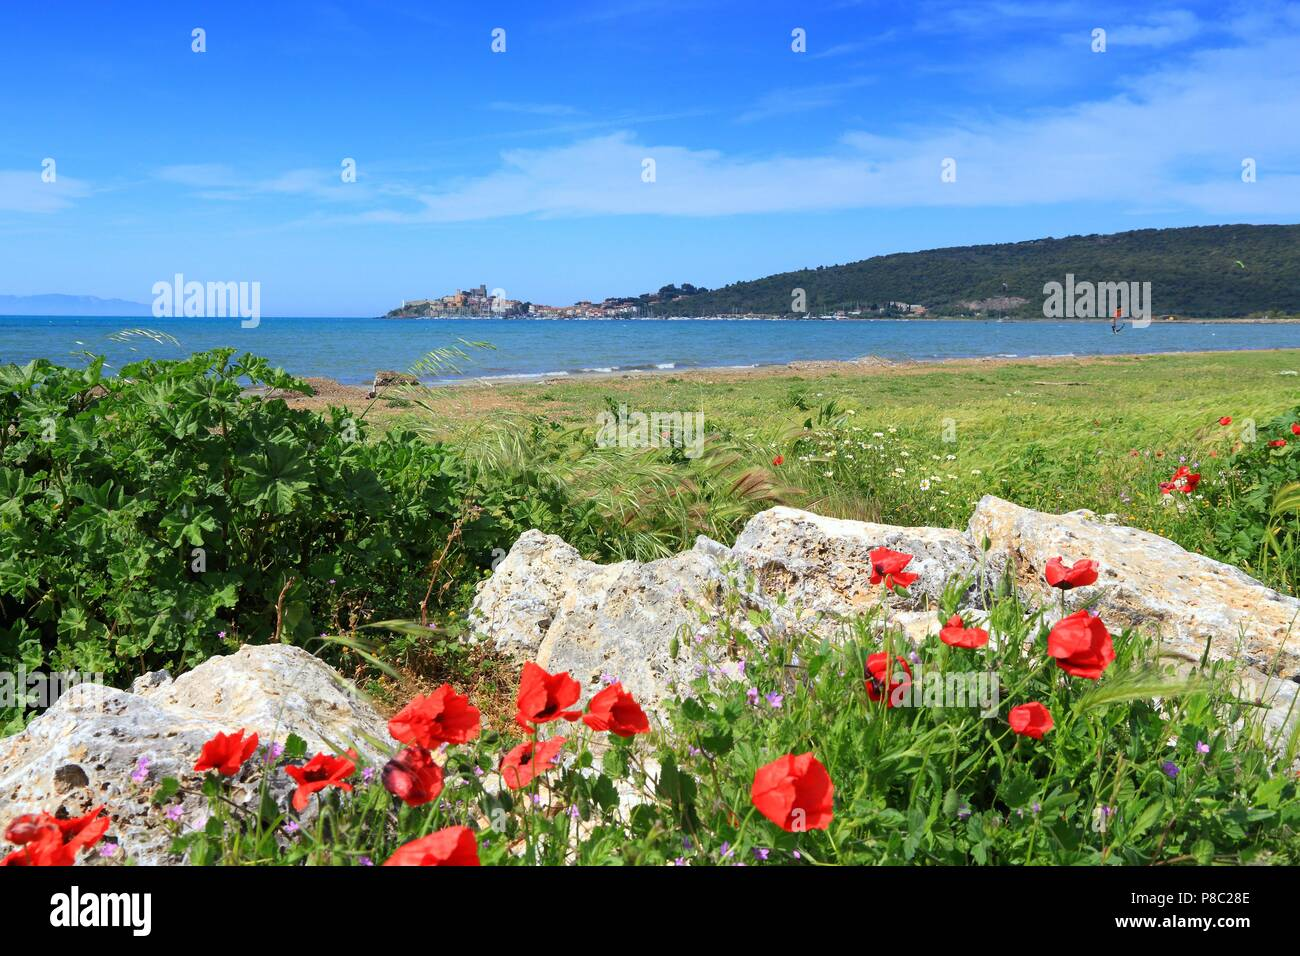 Tuscany, Italy - seaside in Grosseto province. Spring time landscape in Talamone. - Stock Image